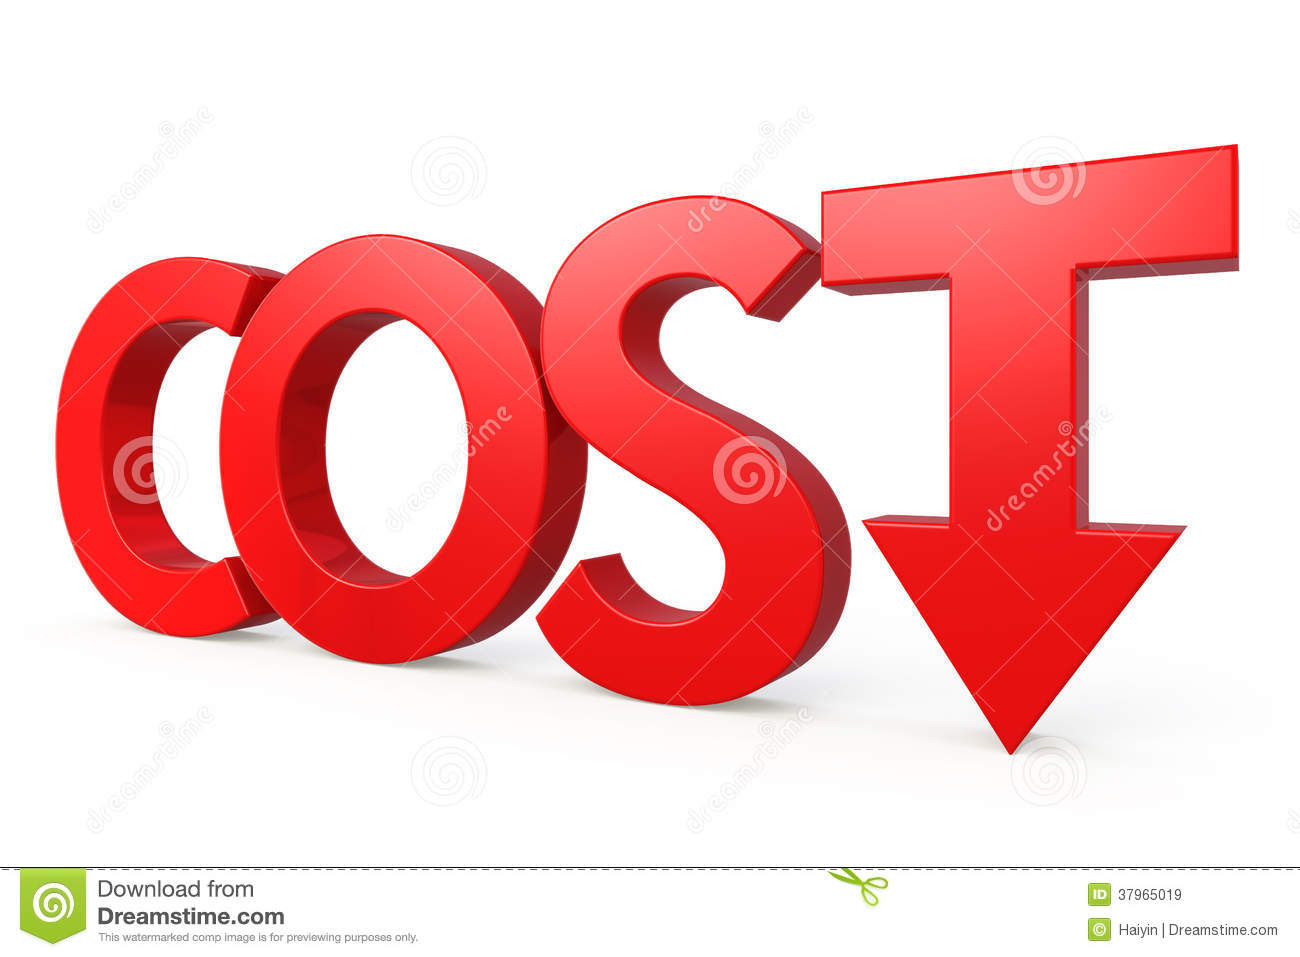 cost down concept clipping path available mr no pr no 3 482 5: www.dreamstime.com/royalty-free-stock-images-cost-down-concept...